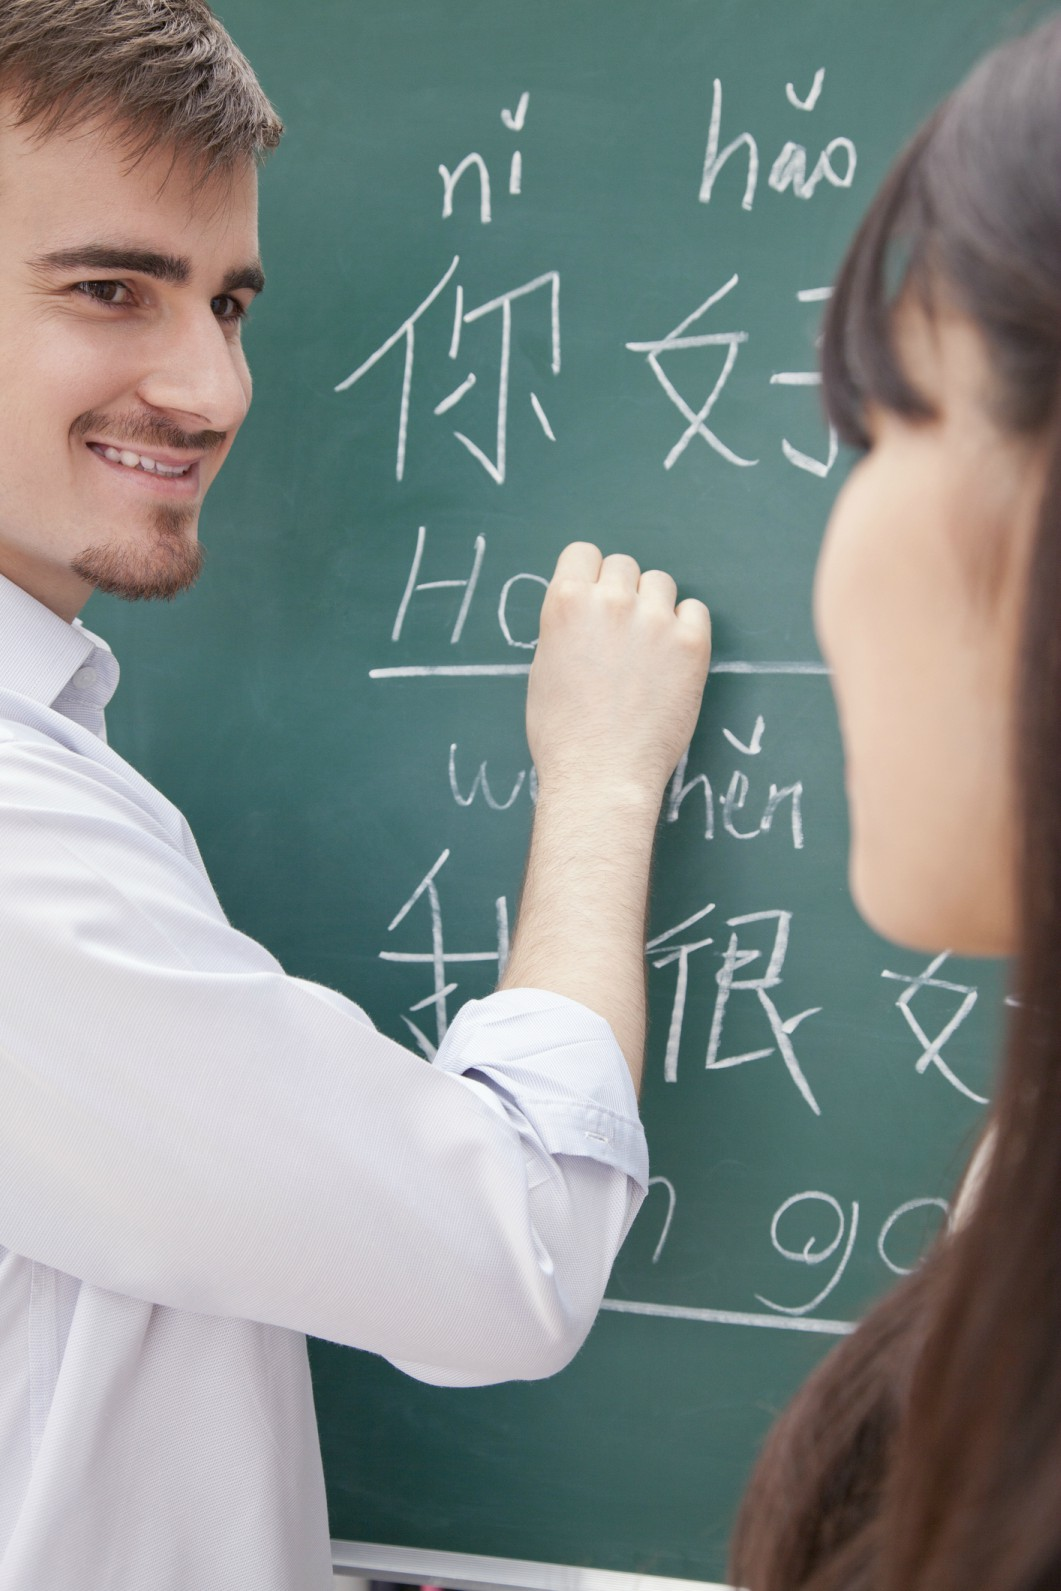 College foreign language instructor works with student at blackboard